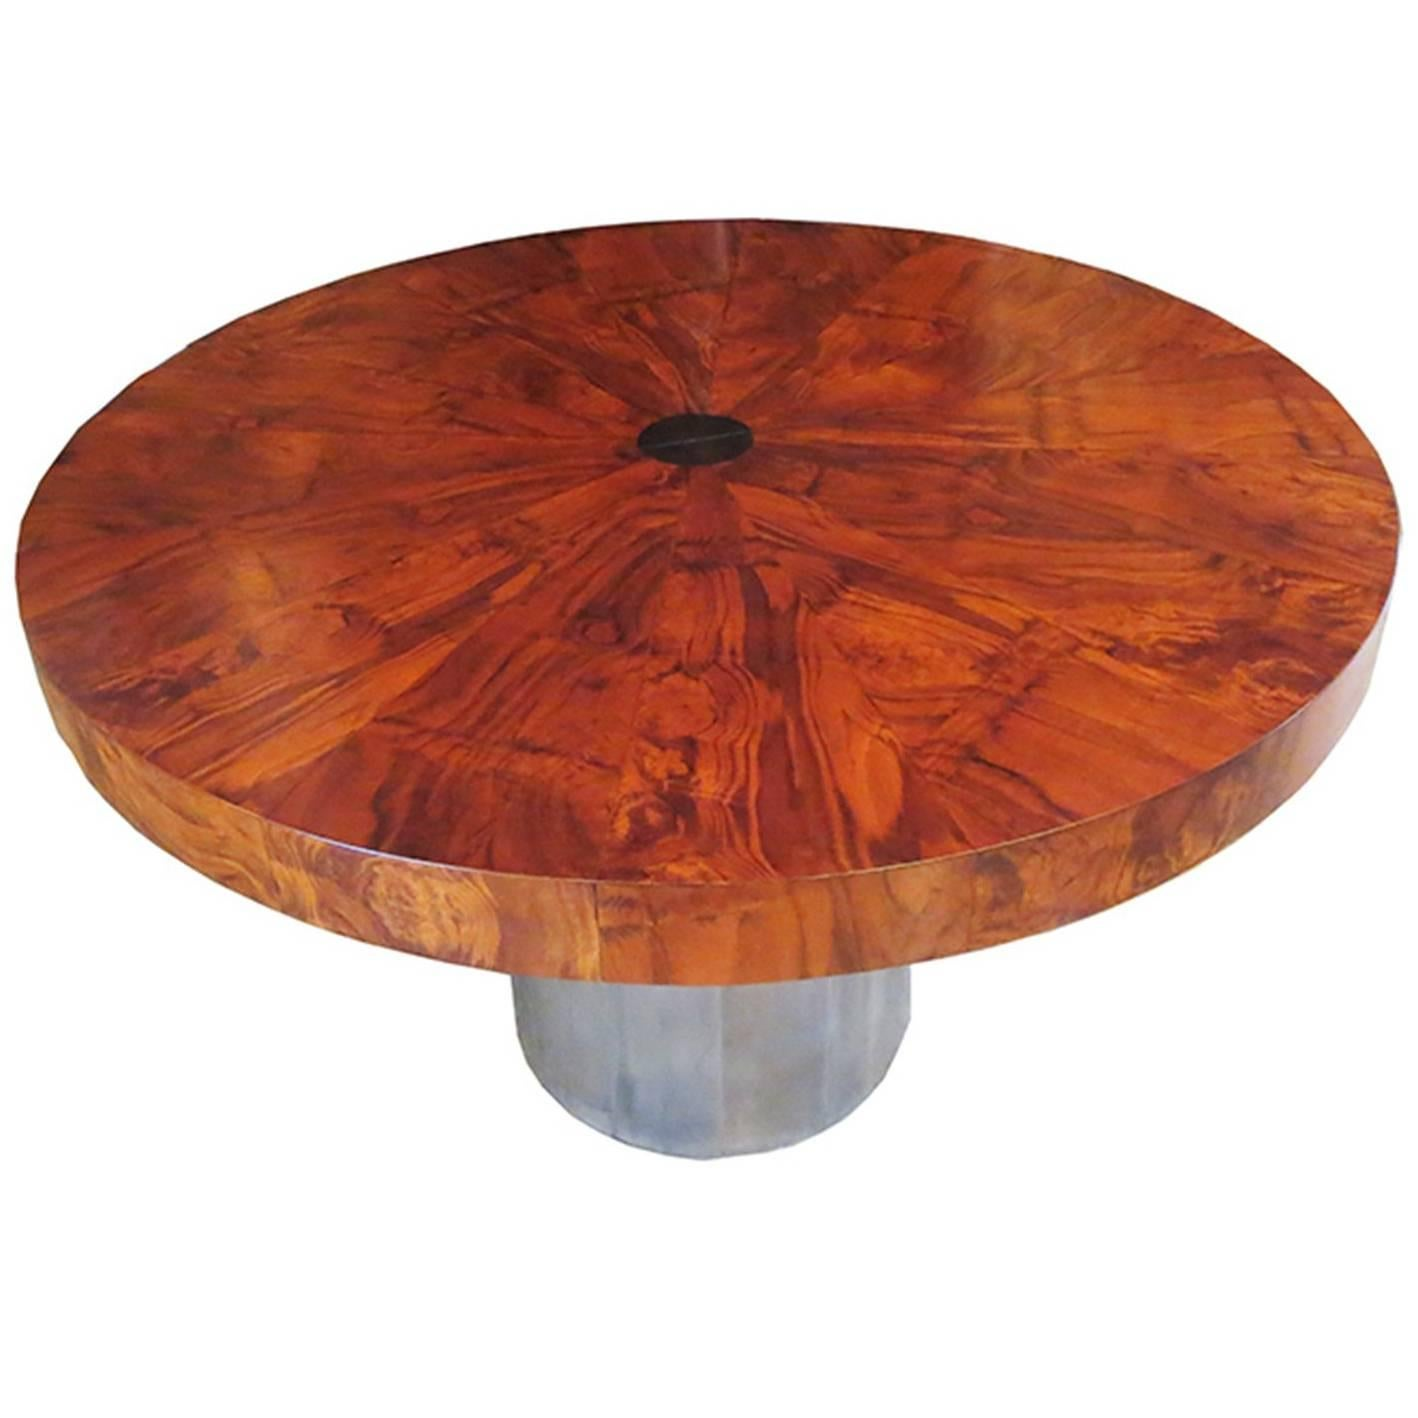 Paul Evans Dining Table, Cityscape Burled Wood And Stainless Steel 1